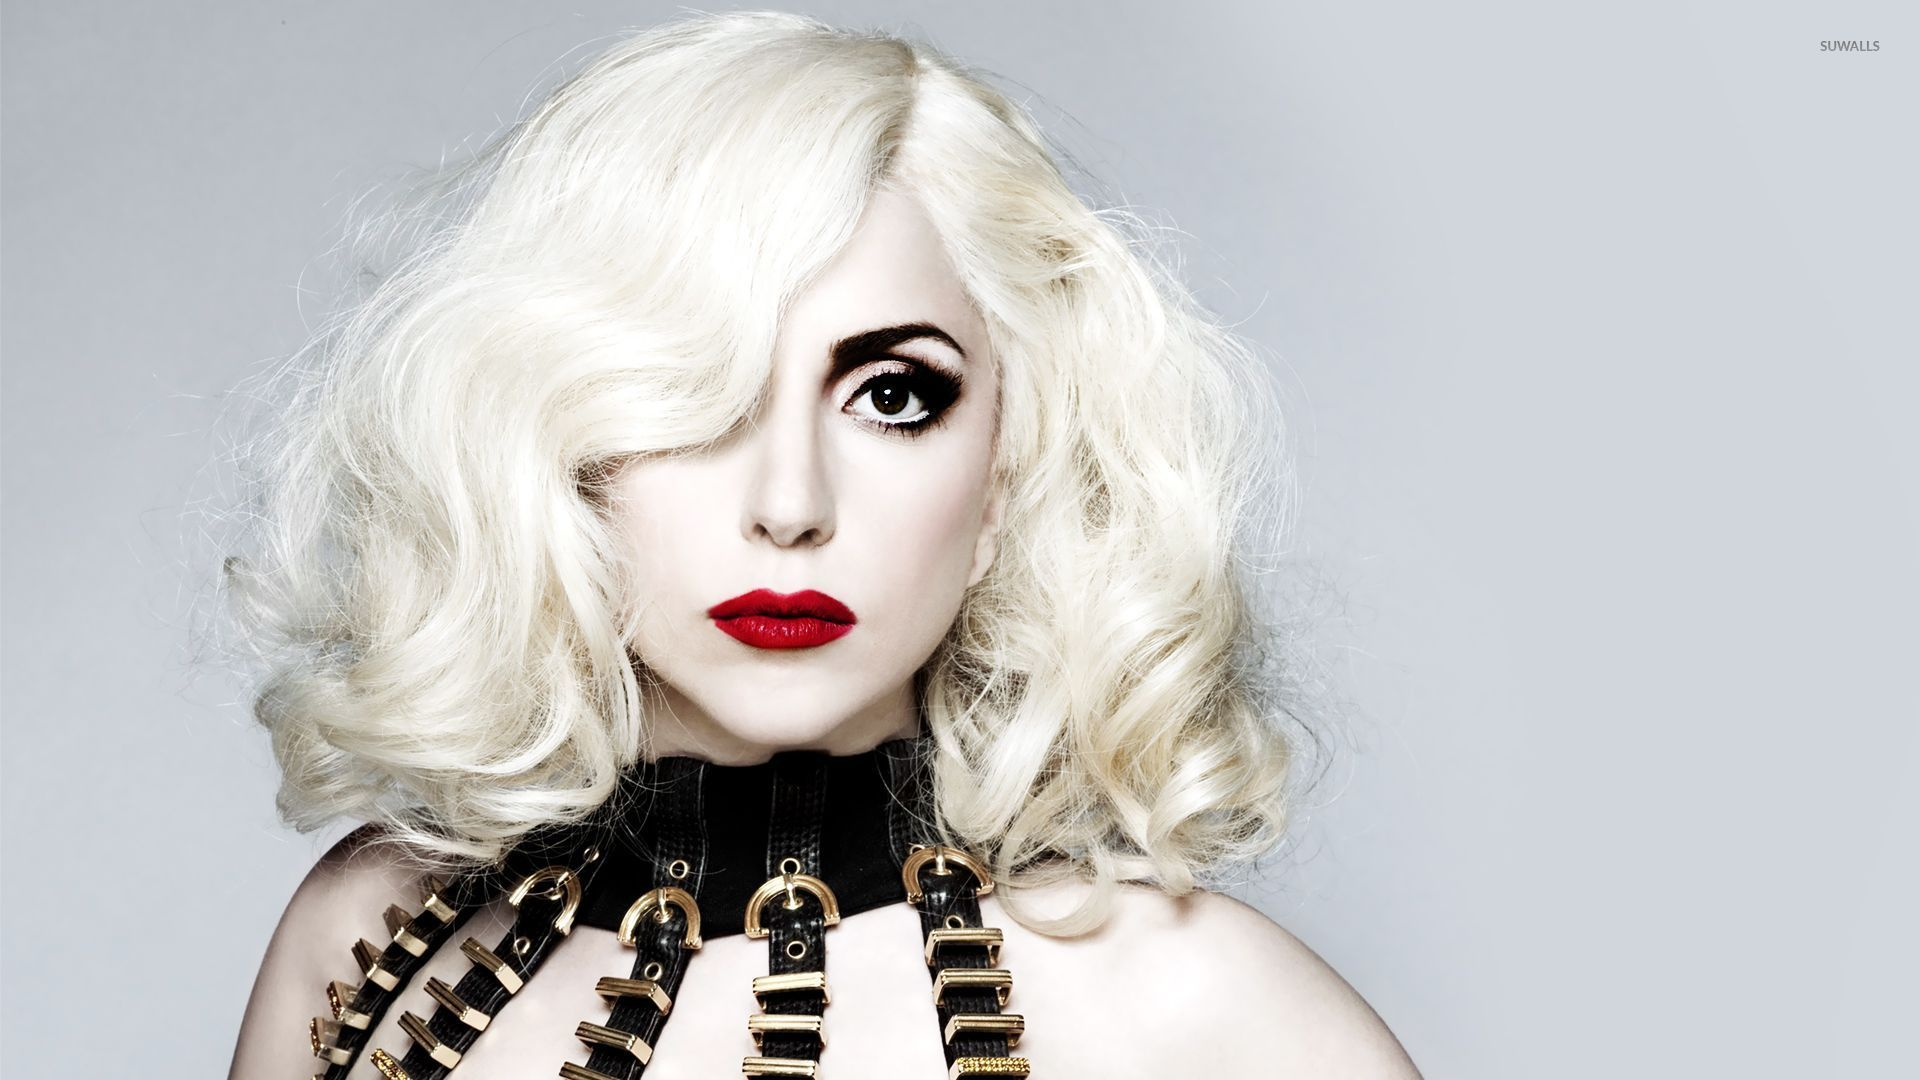 Lady Gaga Wallpapers Top Free Lady Gaga Backgrounds